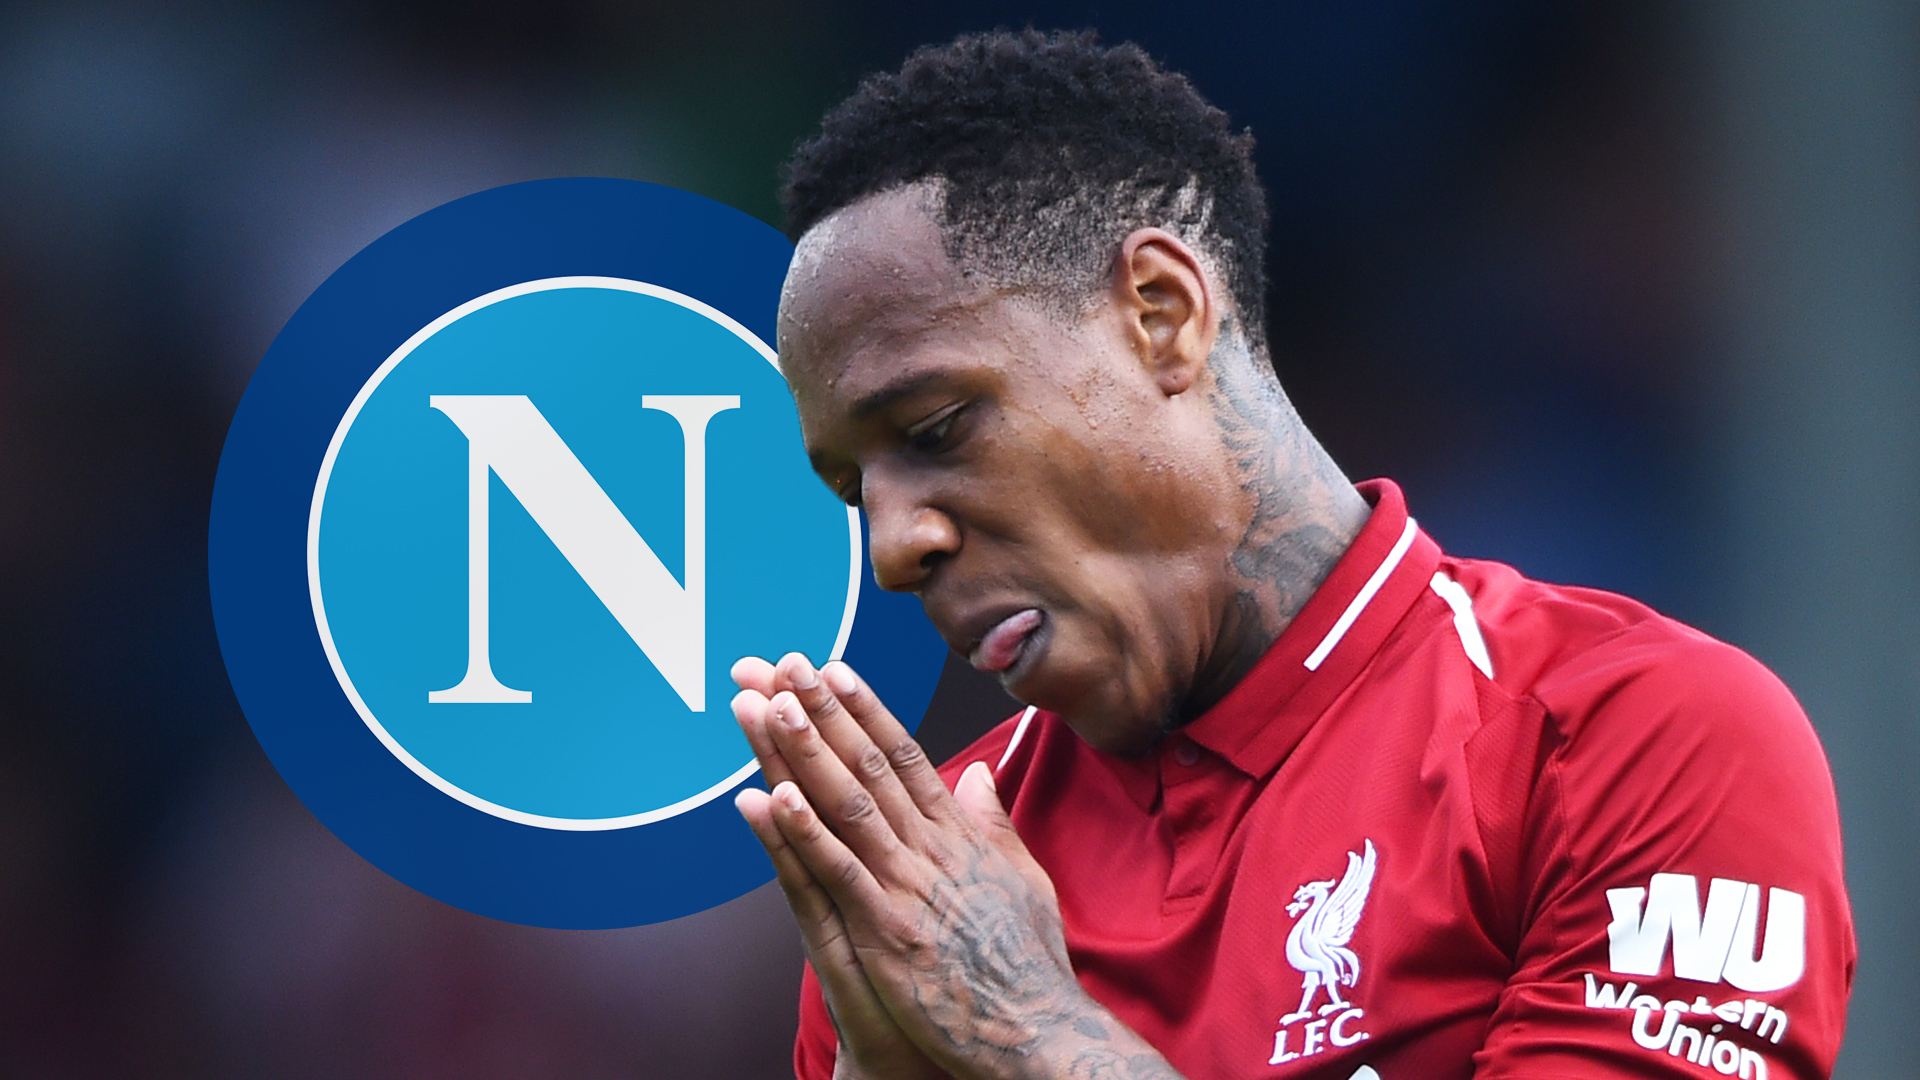 Napoli interested in signing Liverpool's £15m-rated full-back Clyne